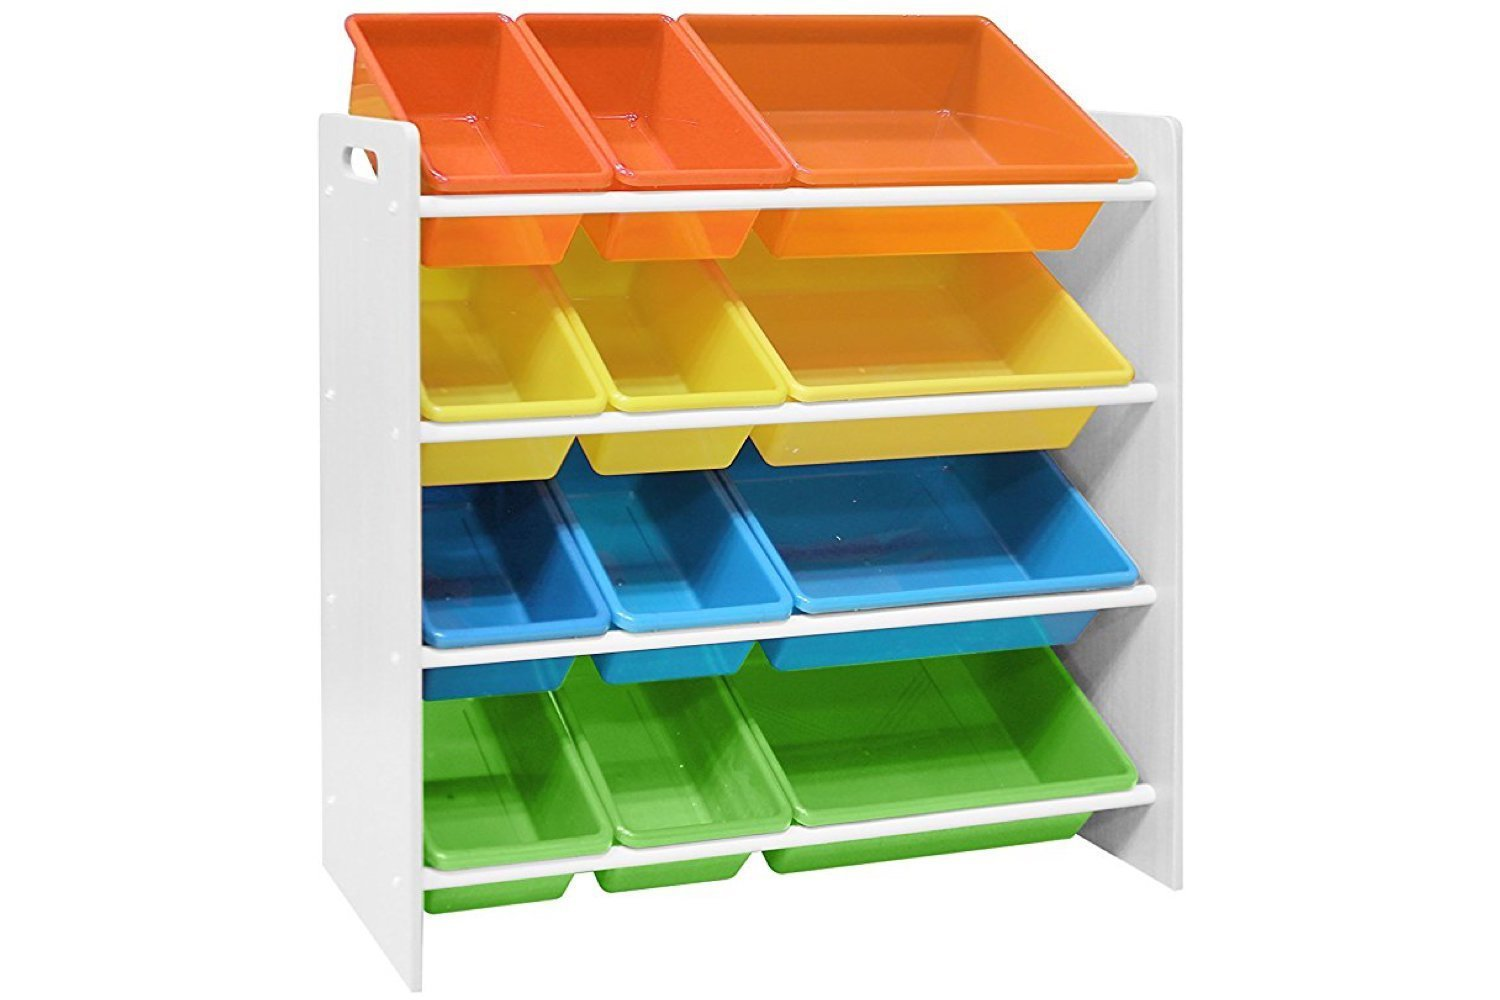 Pidoko Kids Toy Storage Organizer | Wooden Children's Storage Rack, with Plastic Bins (Natural)